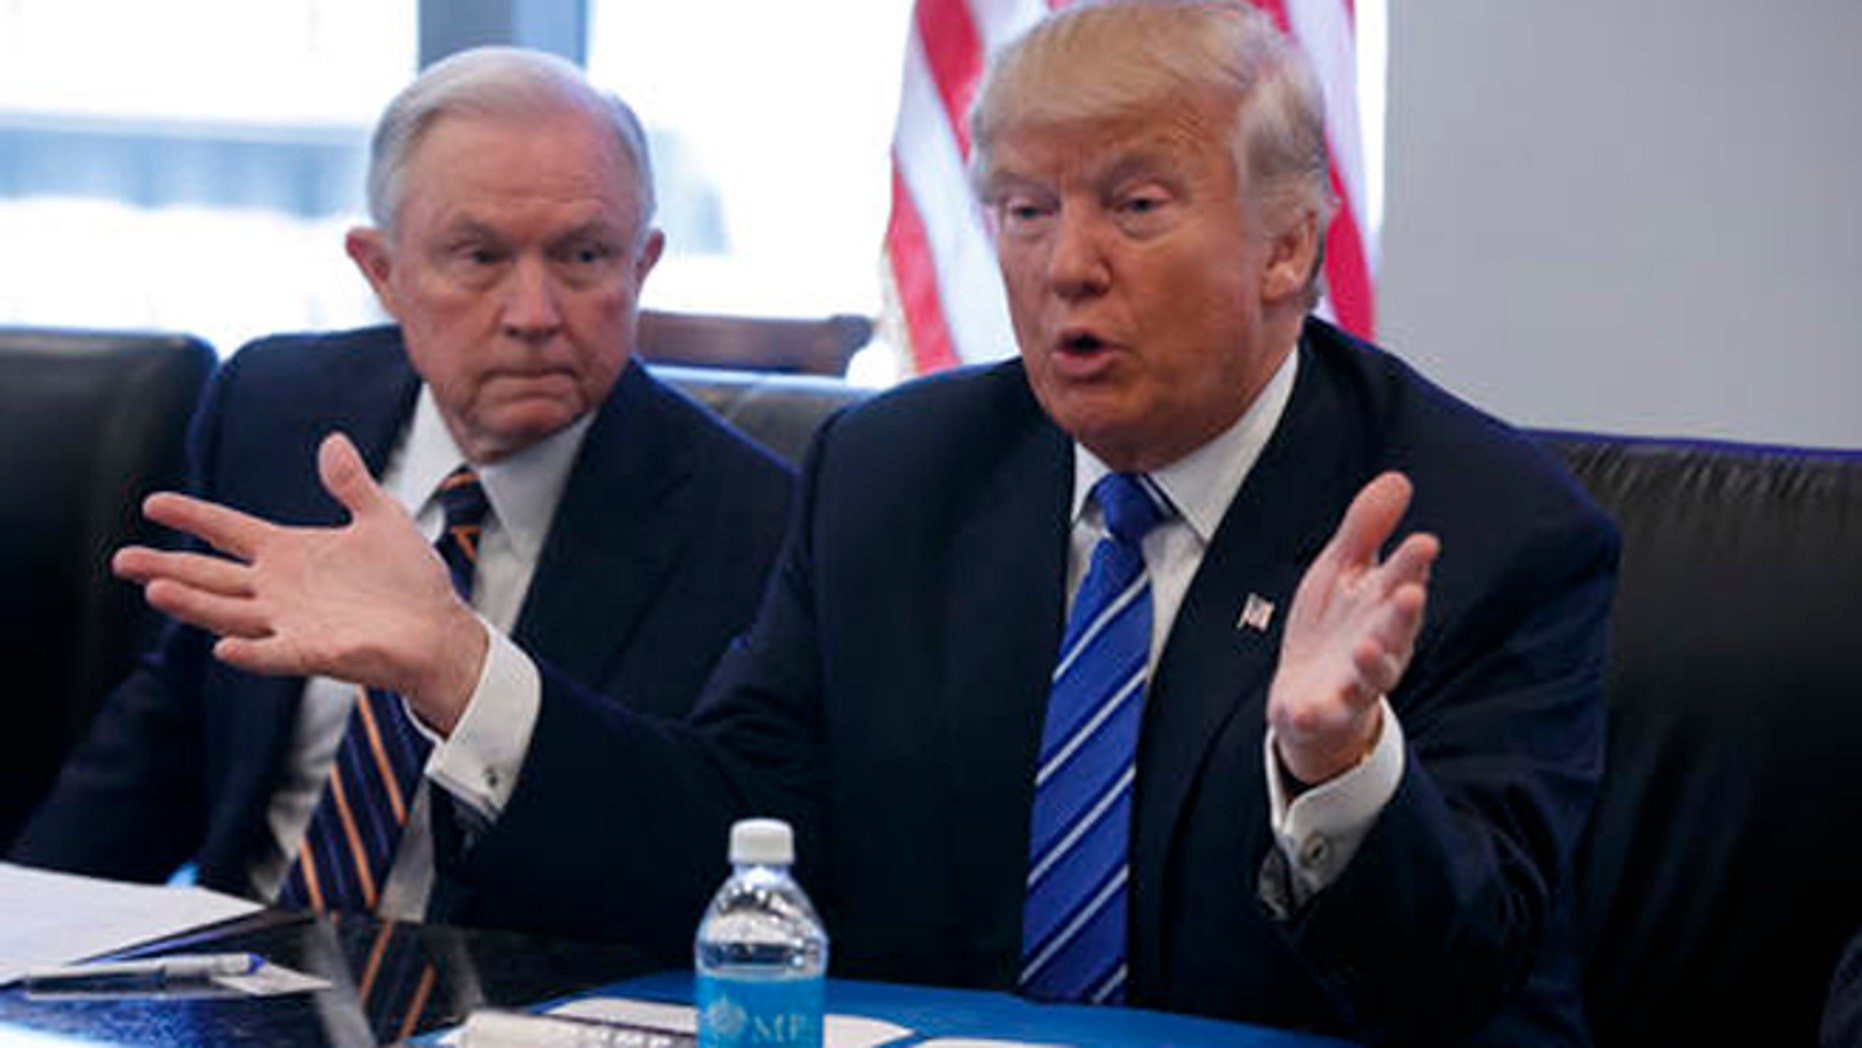 FILE - In this Oct. 7, 2016 file photo, then Sen. Jeff Sessions, R-Ala. listens at left as then-Republican presidential candidate Donald Trump speaks during a national security meeting with advisers at Trump Tower in New York.